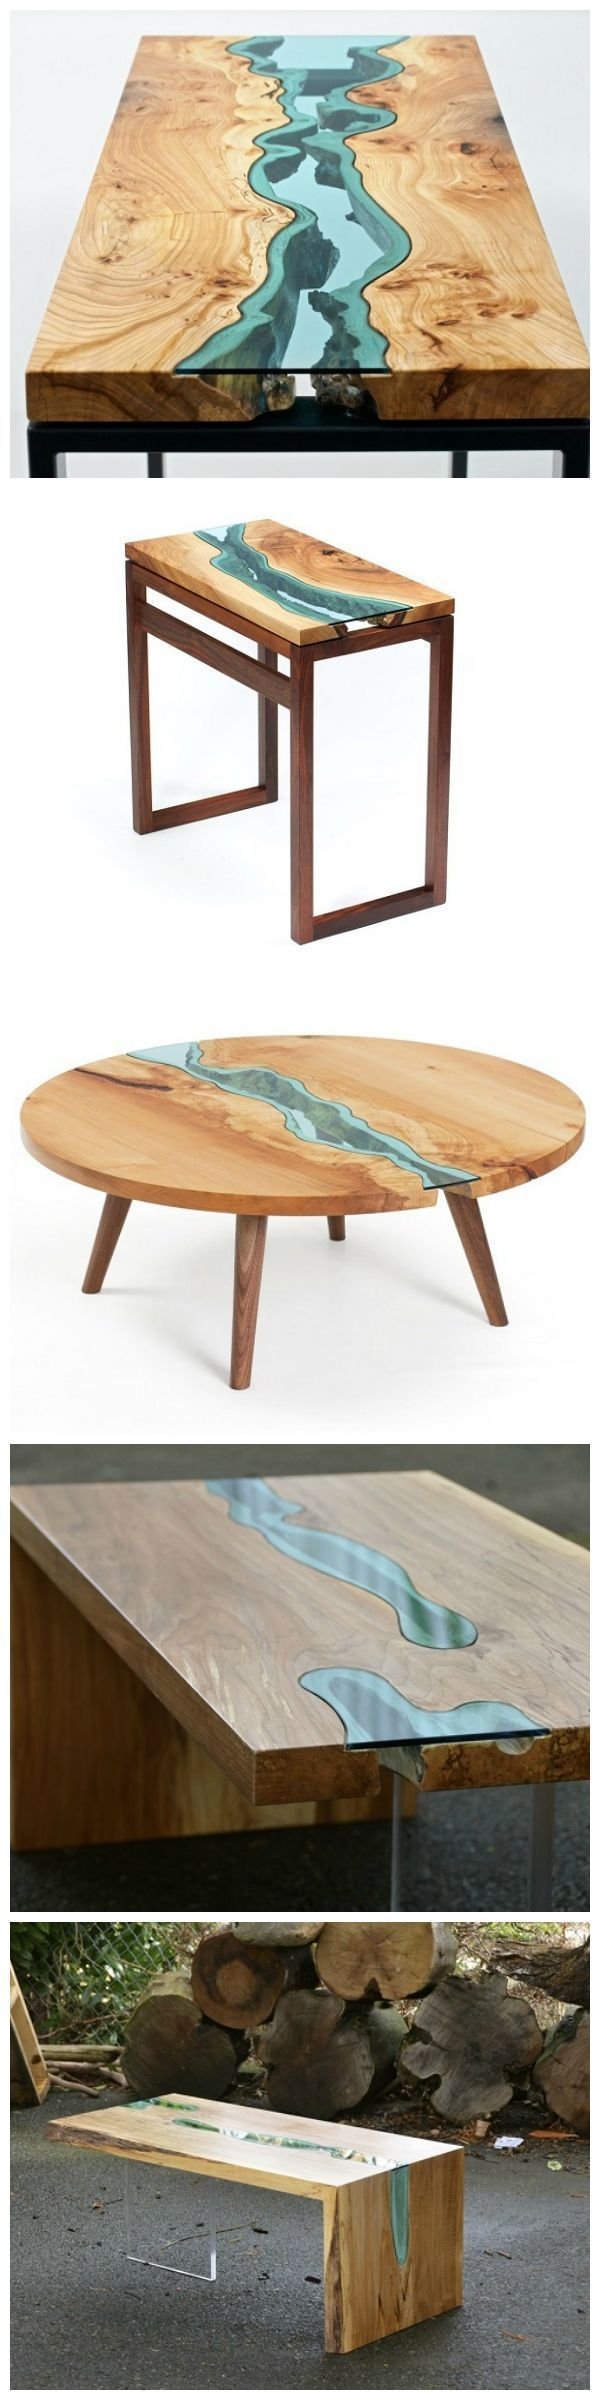 Wicked 24 Stunning Resin Wood Furniture https://www.fancydecors.co/2018/01/16/24-stunning-resin-wood-furniture/ Wood will eventually warp however well it's sealed. Besides making the wood stronger and weather-resistant,